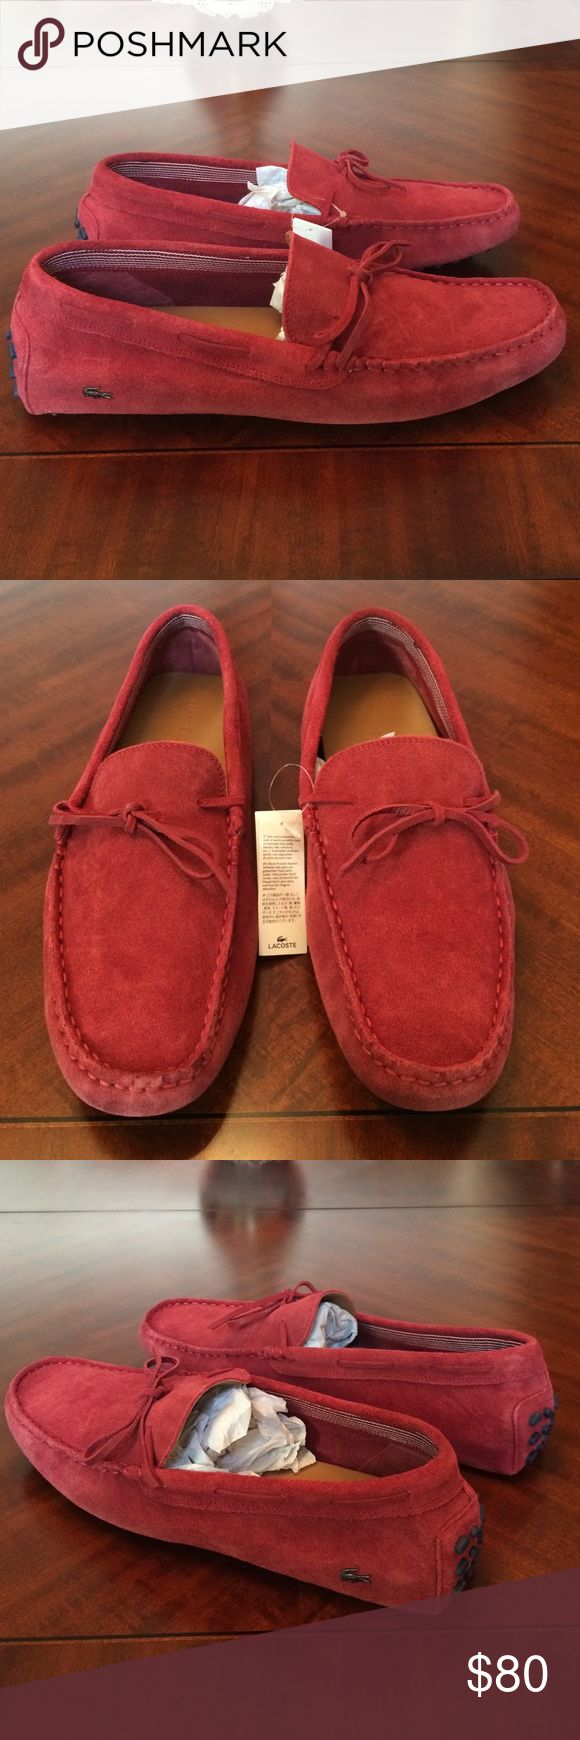 Lacoste driver loafers leather suede dress men new Brand new mens lacoste driving loafer shoes. In dark red maroon color suede. Leather sole. These are the best lacoste shoes you can buy with the metal logo. These are very comfy and the leather and suede is real soft. High quality sneaker. Size 11 men. Size 13 womens. Bought in nordstroms a few years ago. These arent made anymore so hard to find. Thanks. Lacoste Shoes Loafers & Slip-Ons